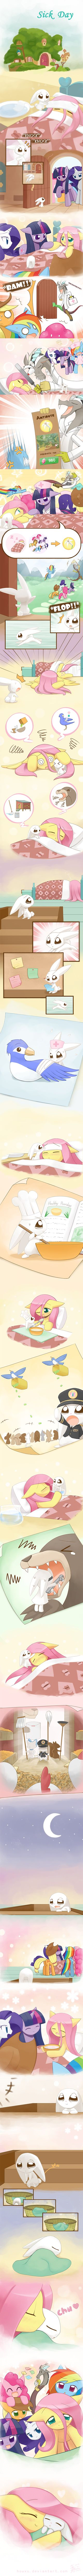 Even though I don't like mlp this is cute